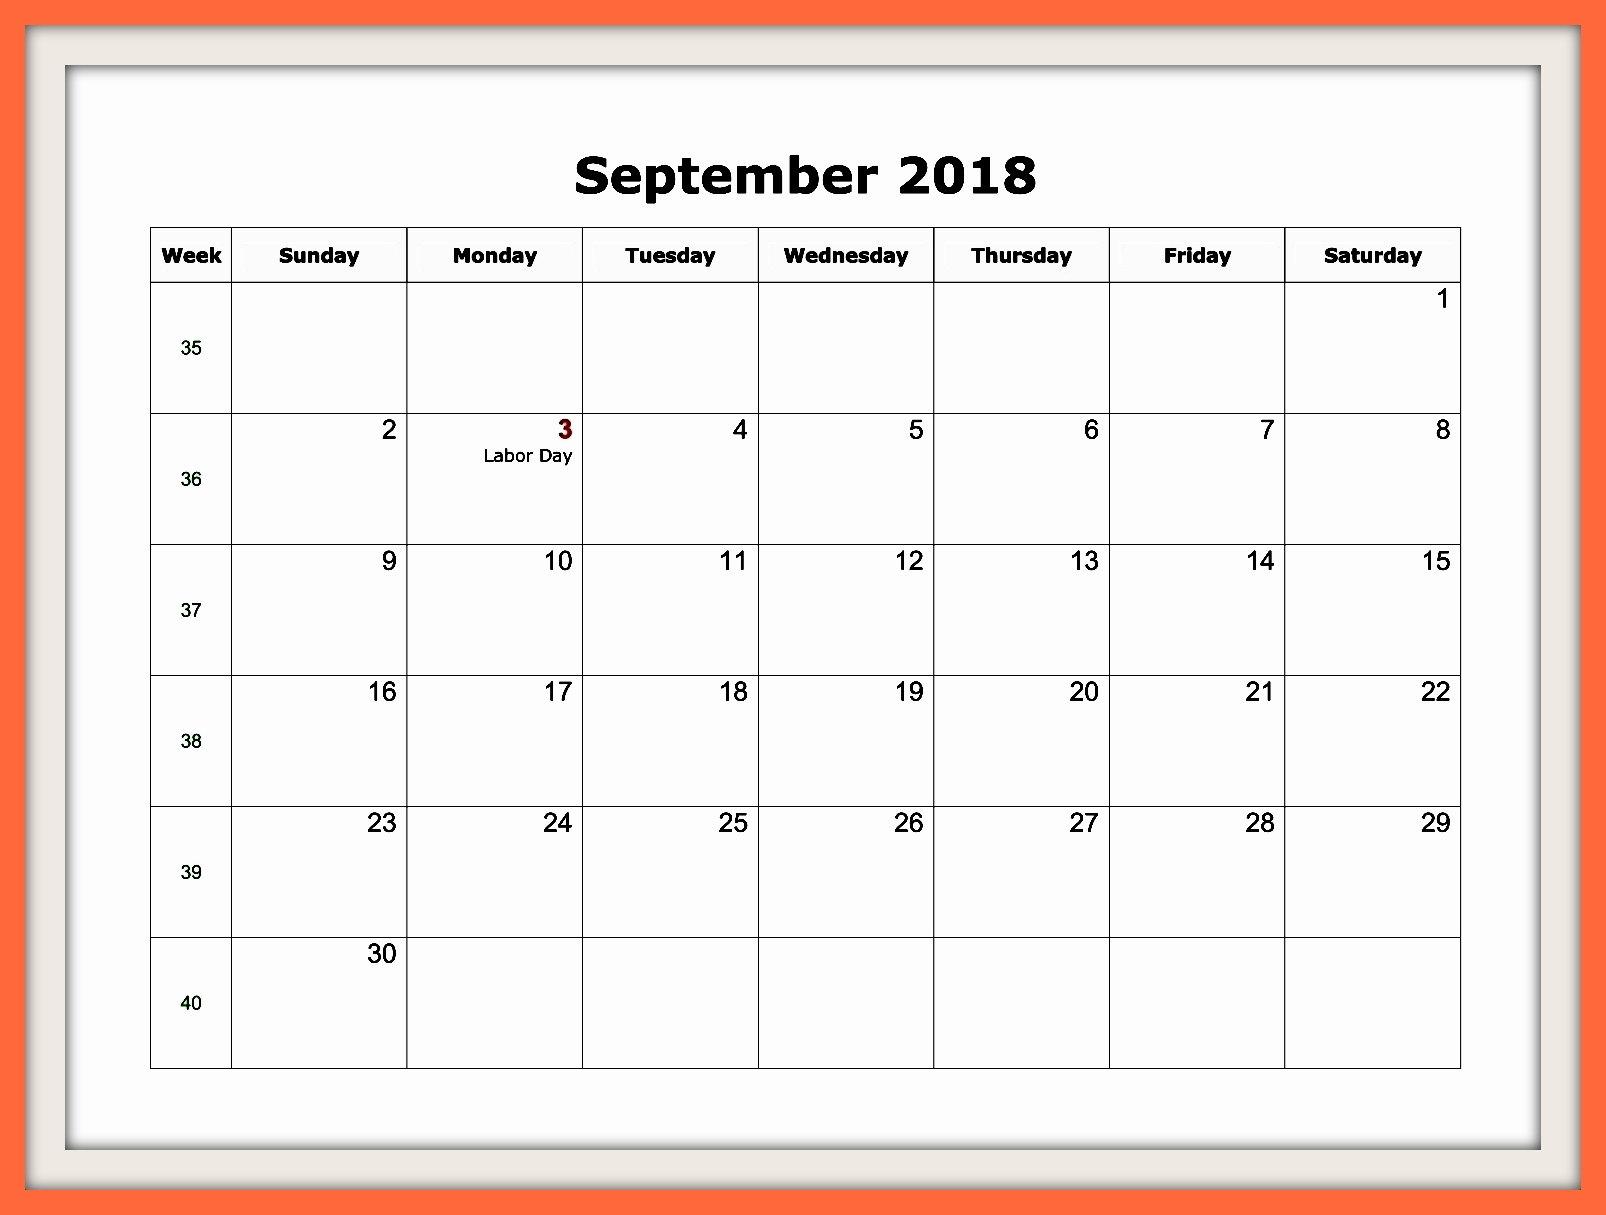 September 2018 Telugu Calendar